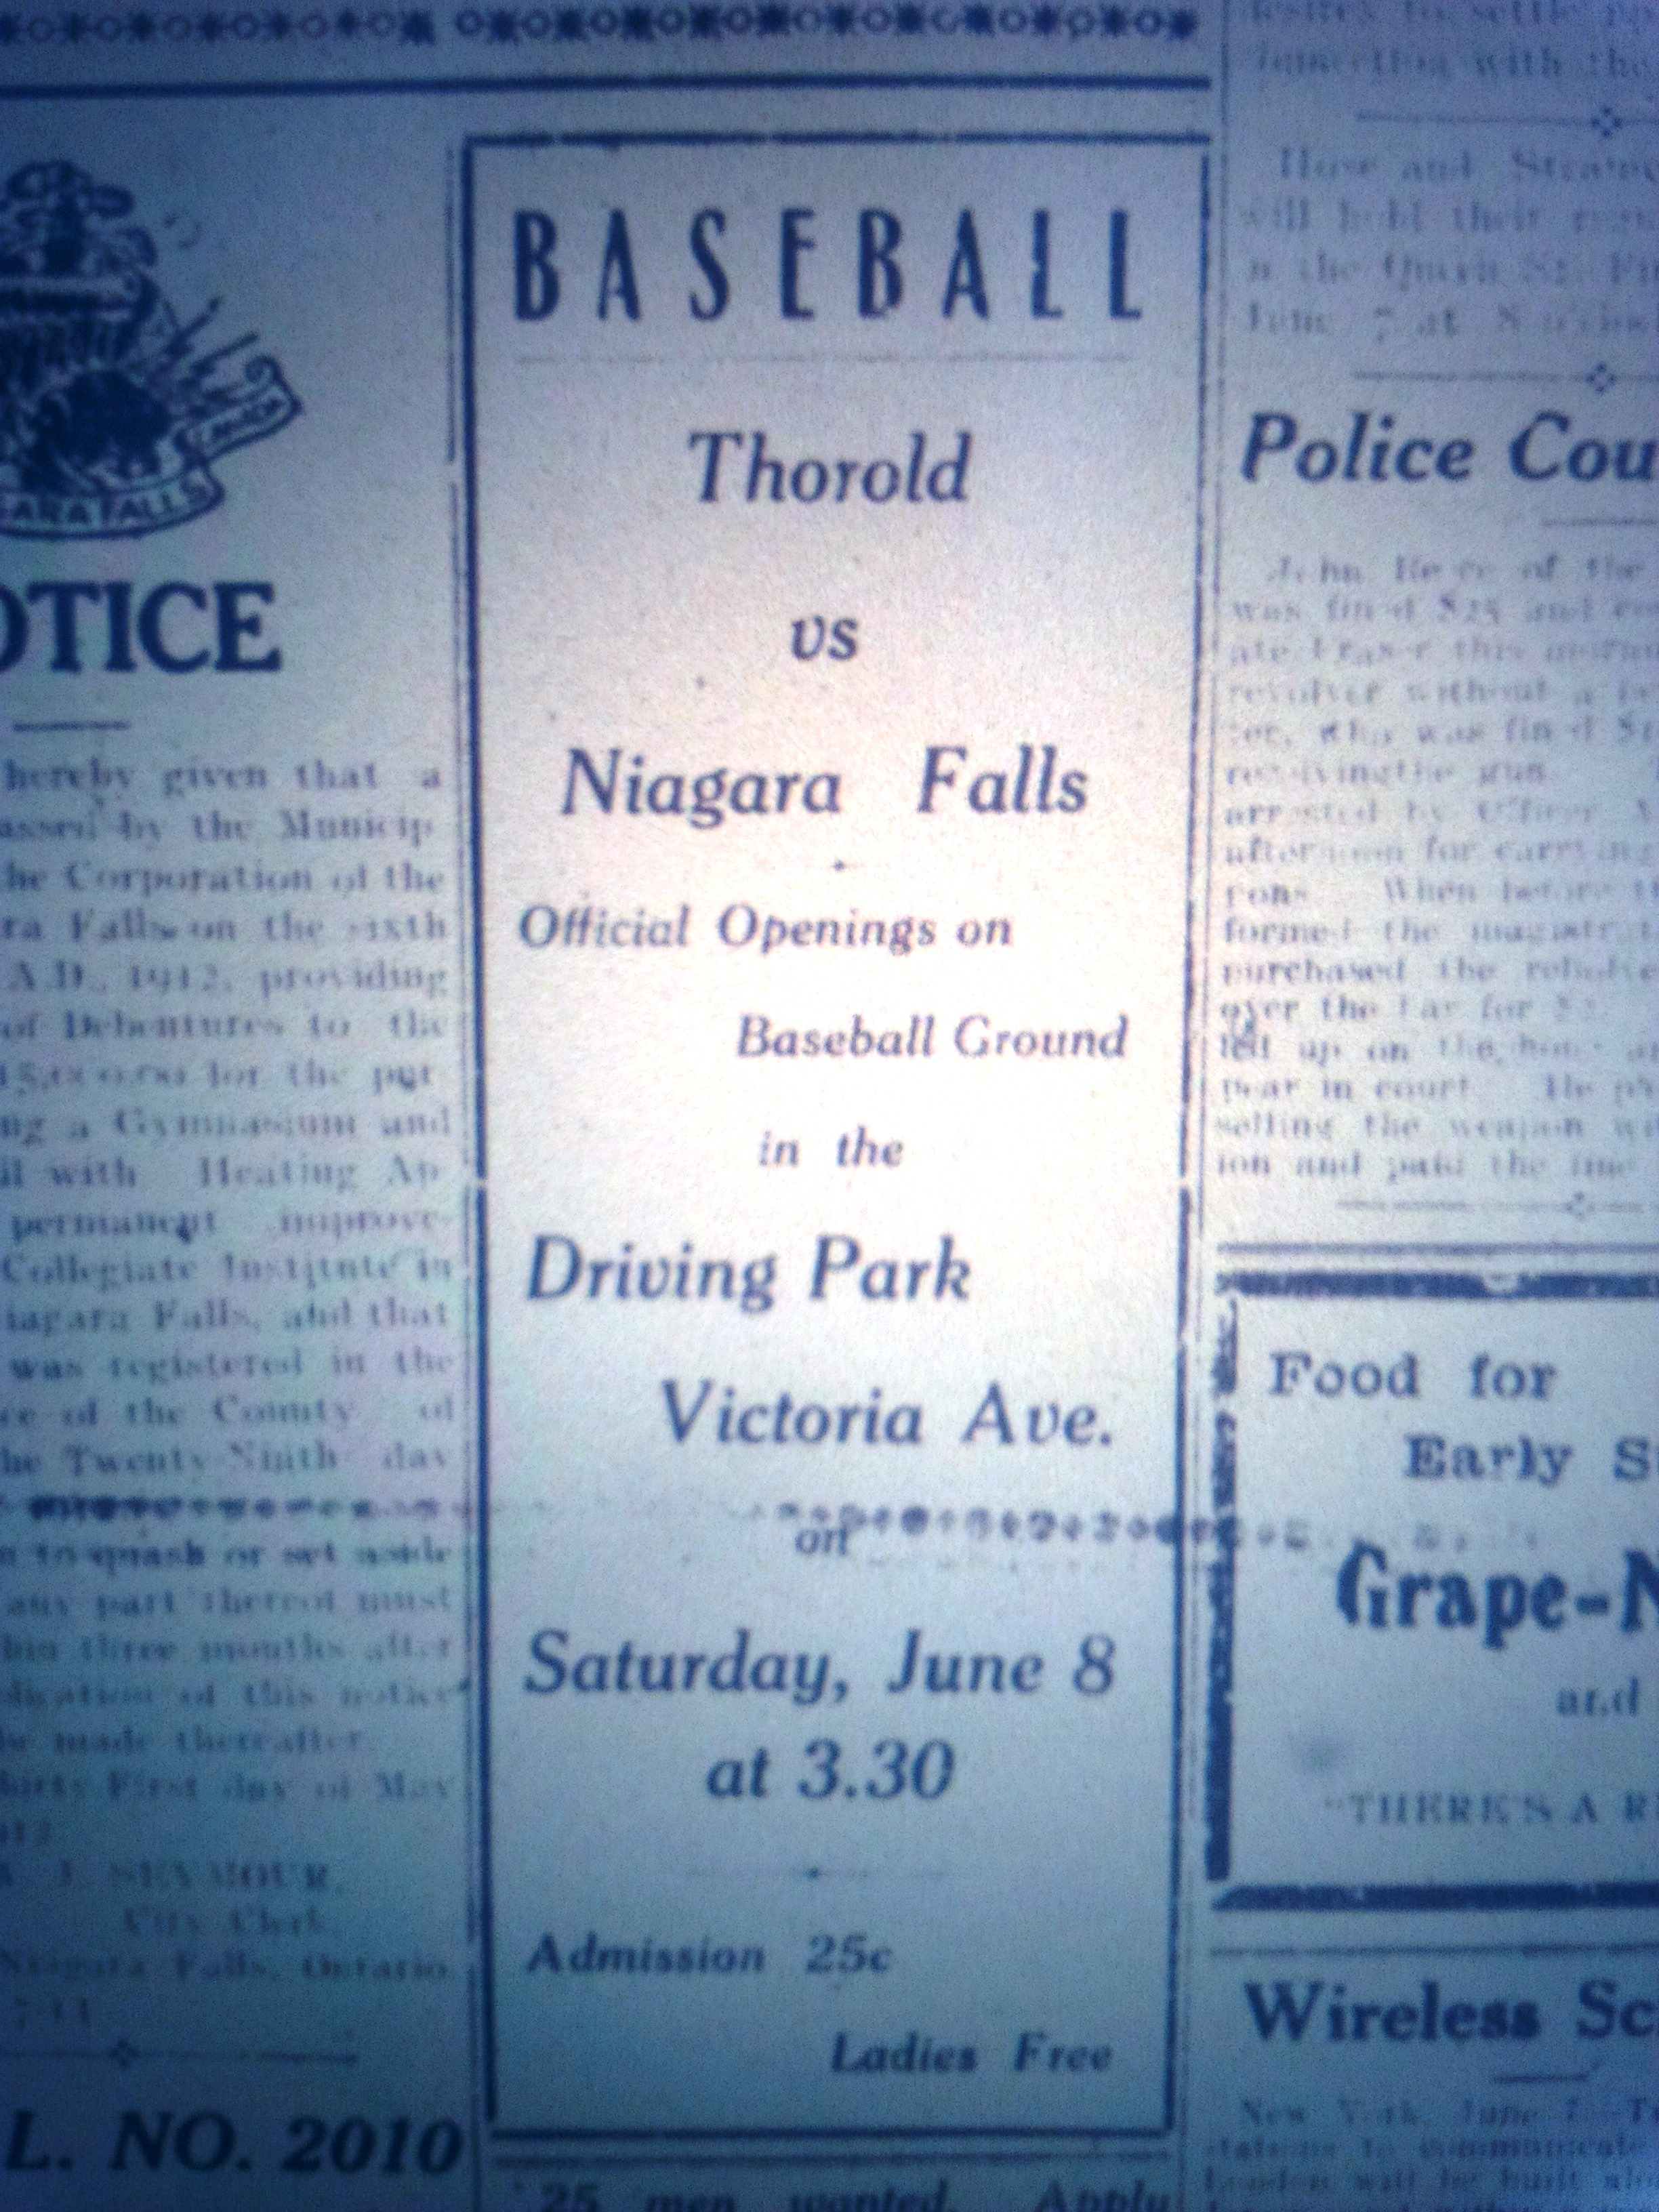 AD from the Daily Record of June 7 1912 showing a baseball game at Victoria Driving Park